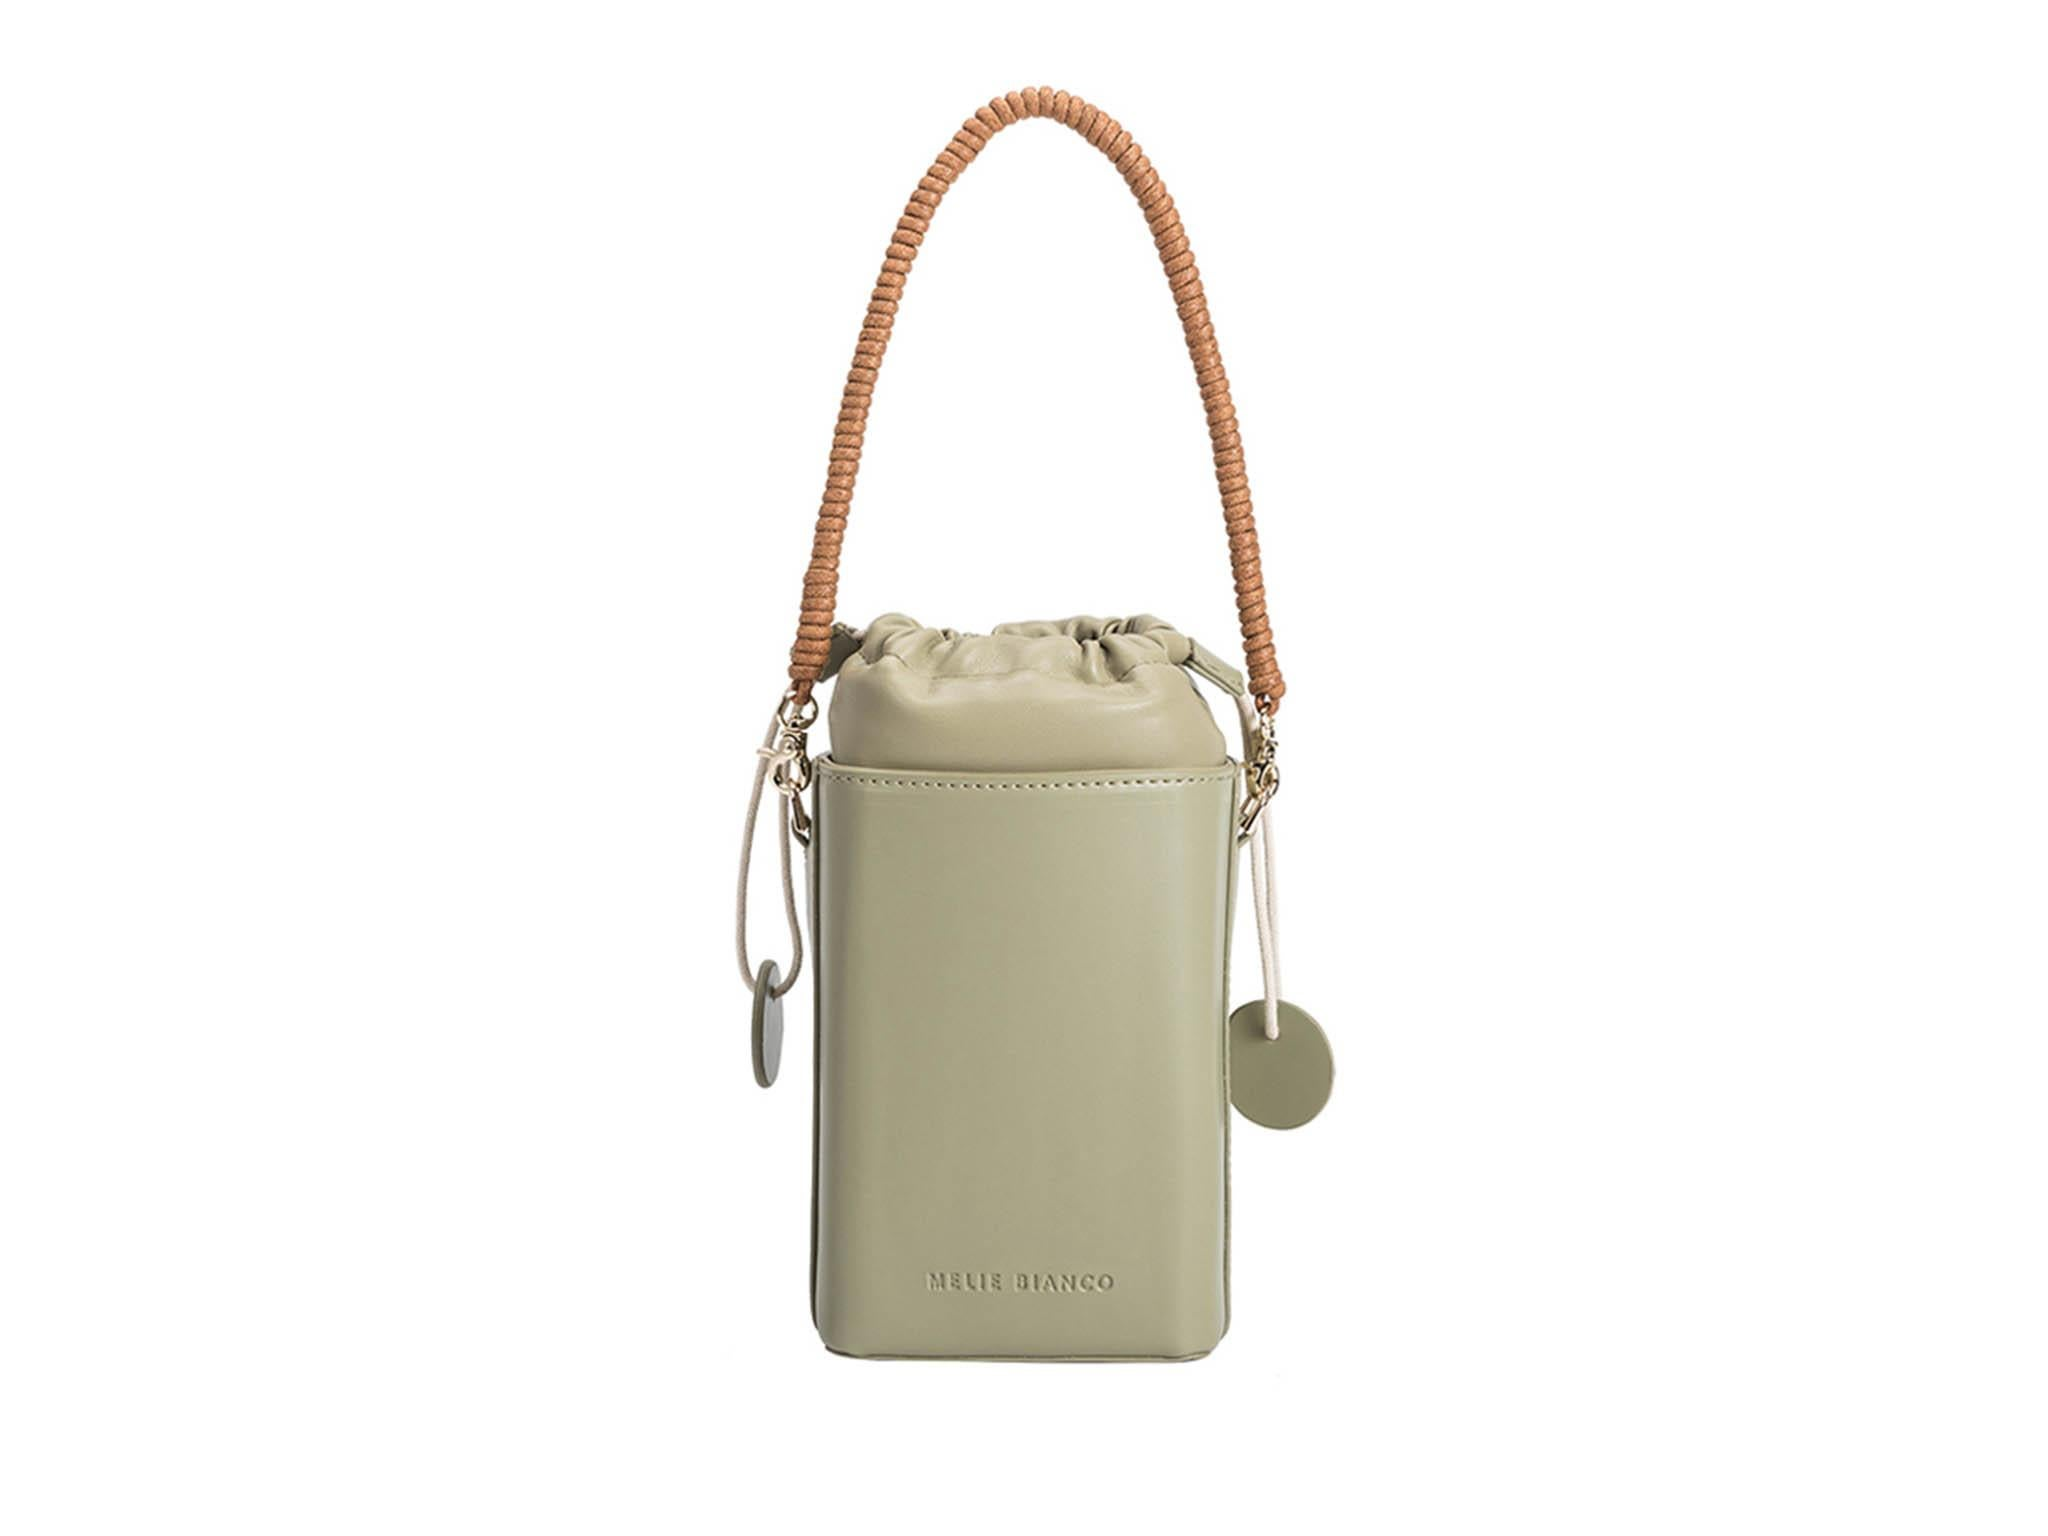 Blush Melie Bianco Stylish Crossbody Strap Shoulder Bags For Women Bucket Design Luxury Vegan Leather